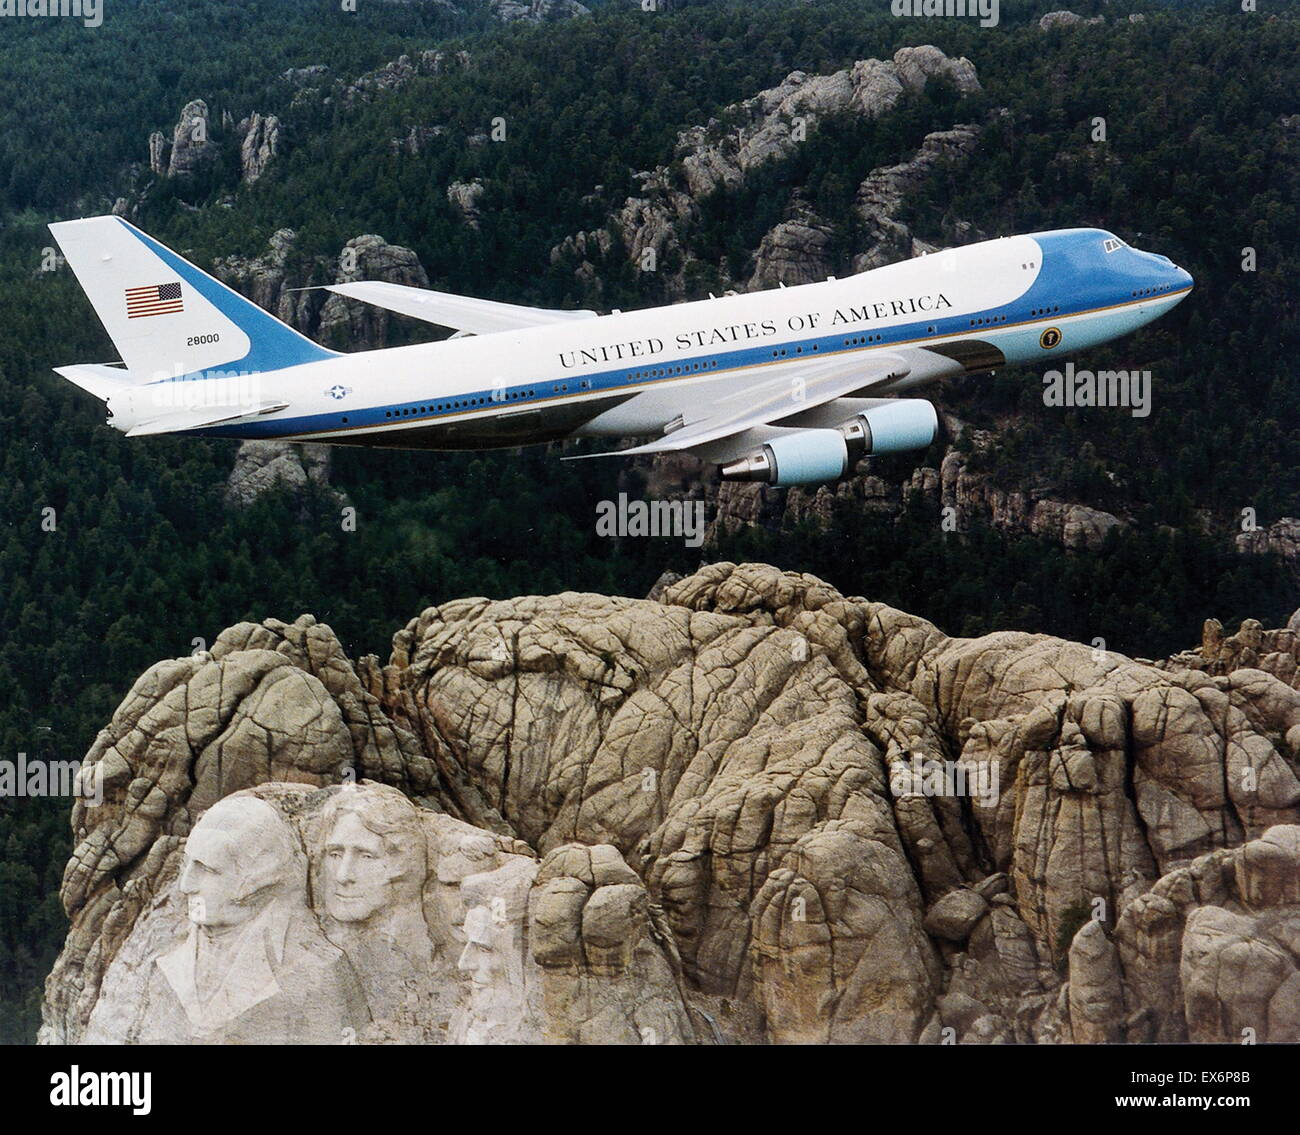 one of the two VC-25s used as Air Force One, flying over Mount Rushmore in February 2003. - Stock Image